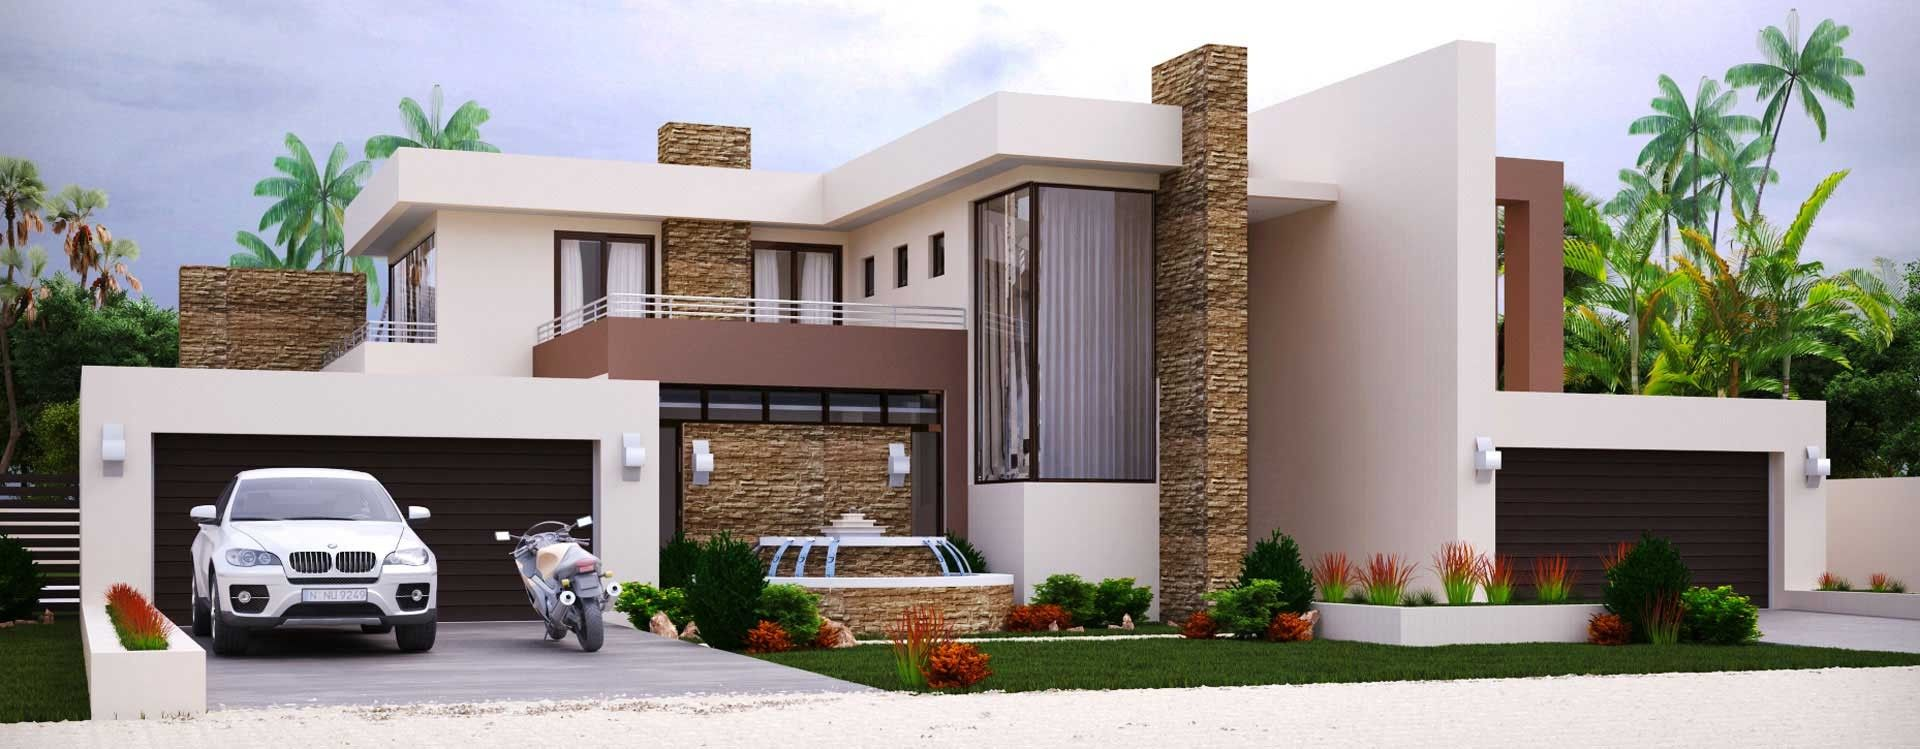 Best Of Modern 3 Bedroom House Plans South Africa 10 Estimate House Plans South Africa Home Design Floor Plans 4 Bedroom House Plans